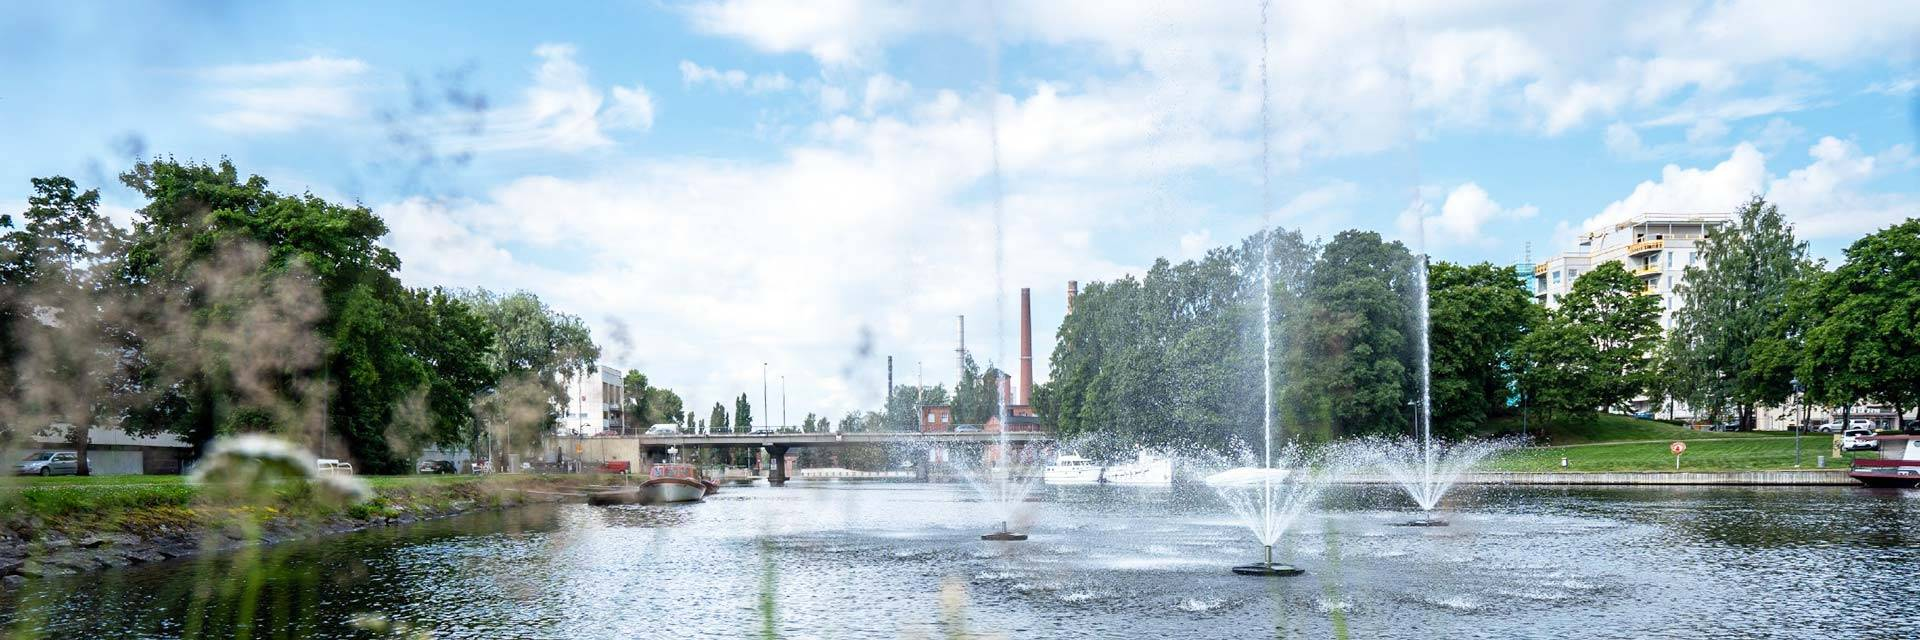 Water fountains at the cemter of Valkeakoski city